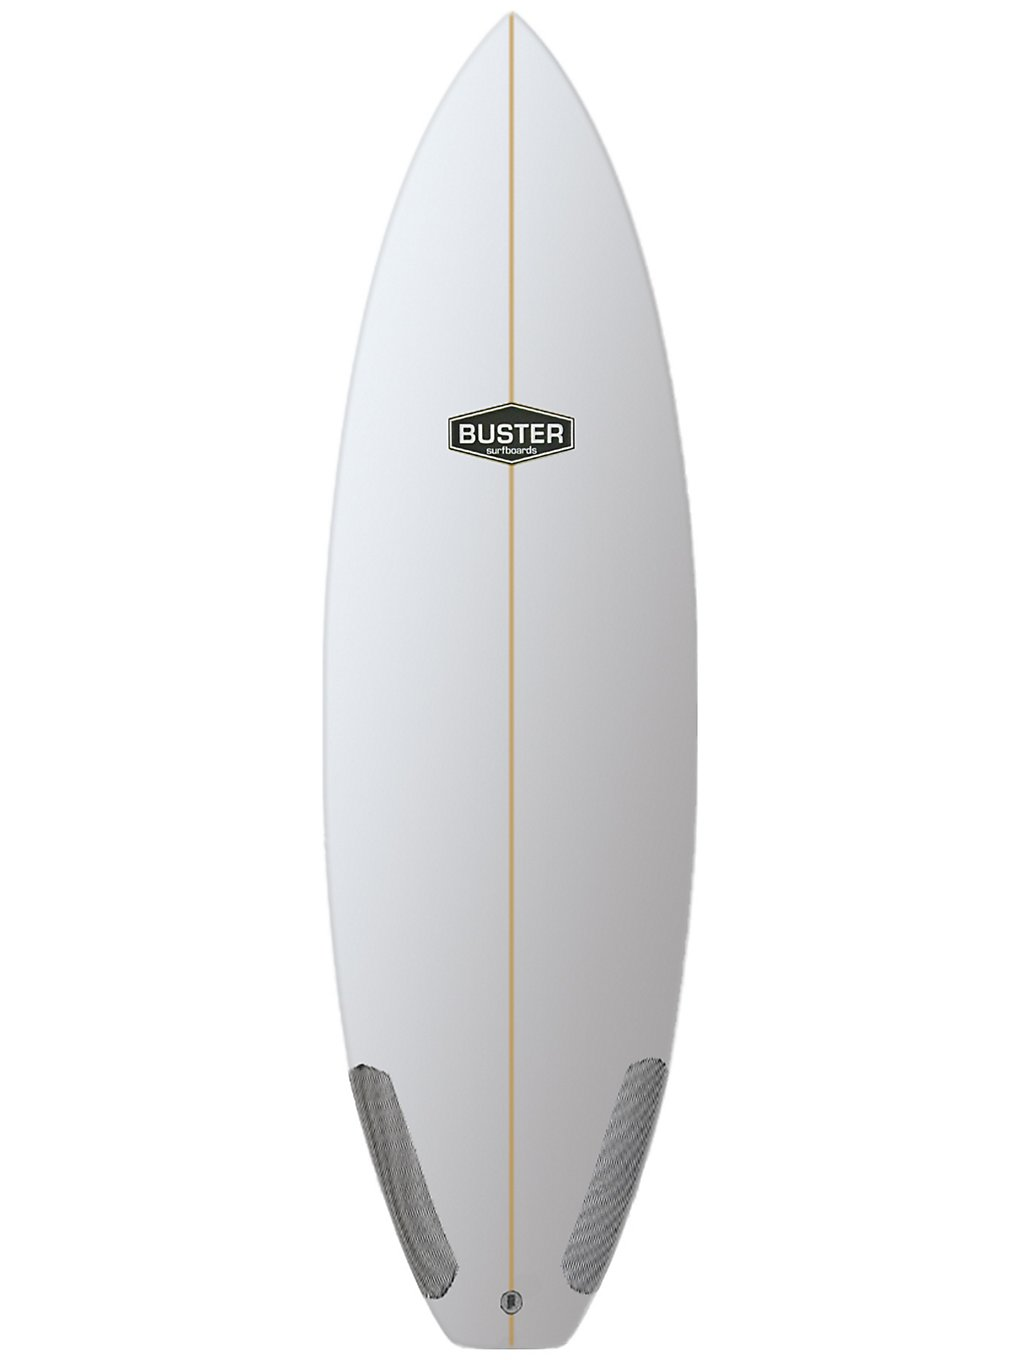 Buster Ripstick 19''5/8 2''1/4 5.11